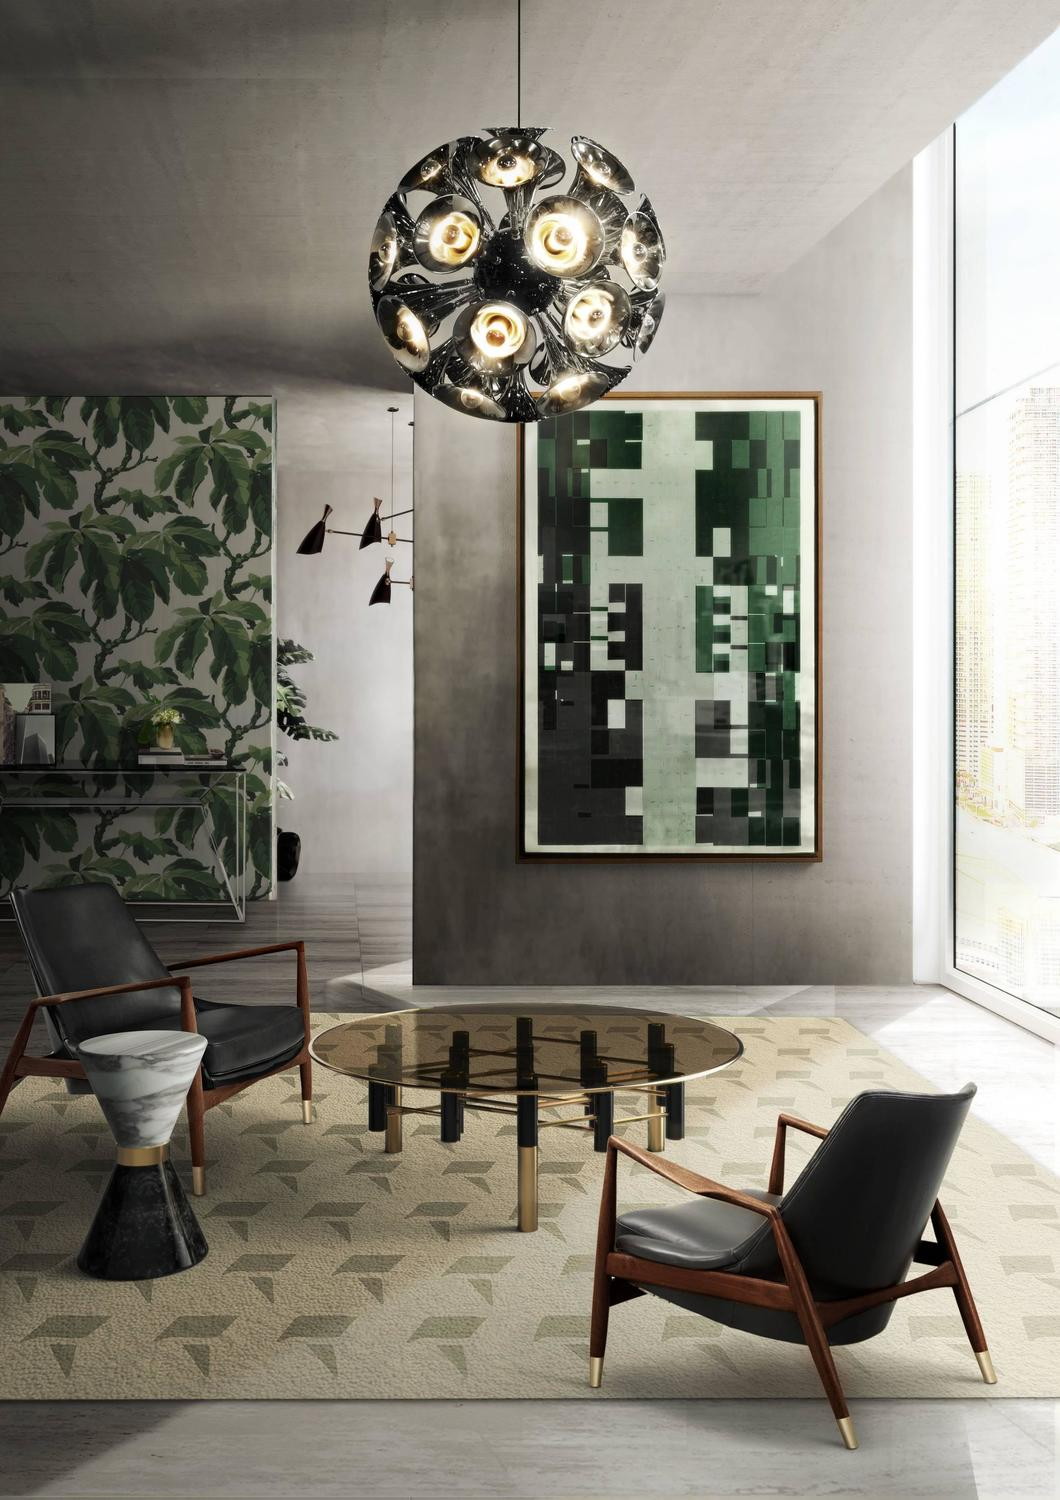 The Best Fall Trends to Improve Your Living Room Decoration10 Fall trends The Best Fall Trends to Improve Your Living Room Decoration The Best Fall Trends to Improve Your Living Room Decoration10